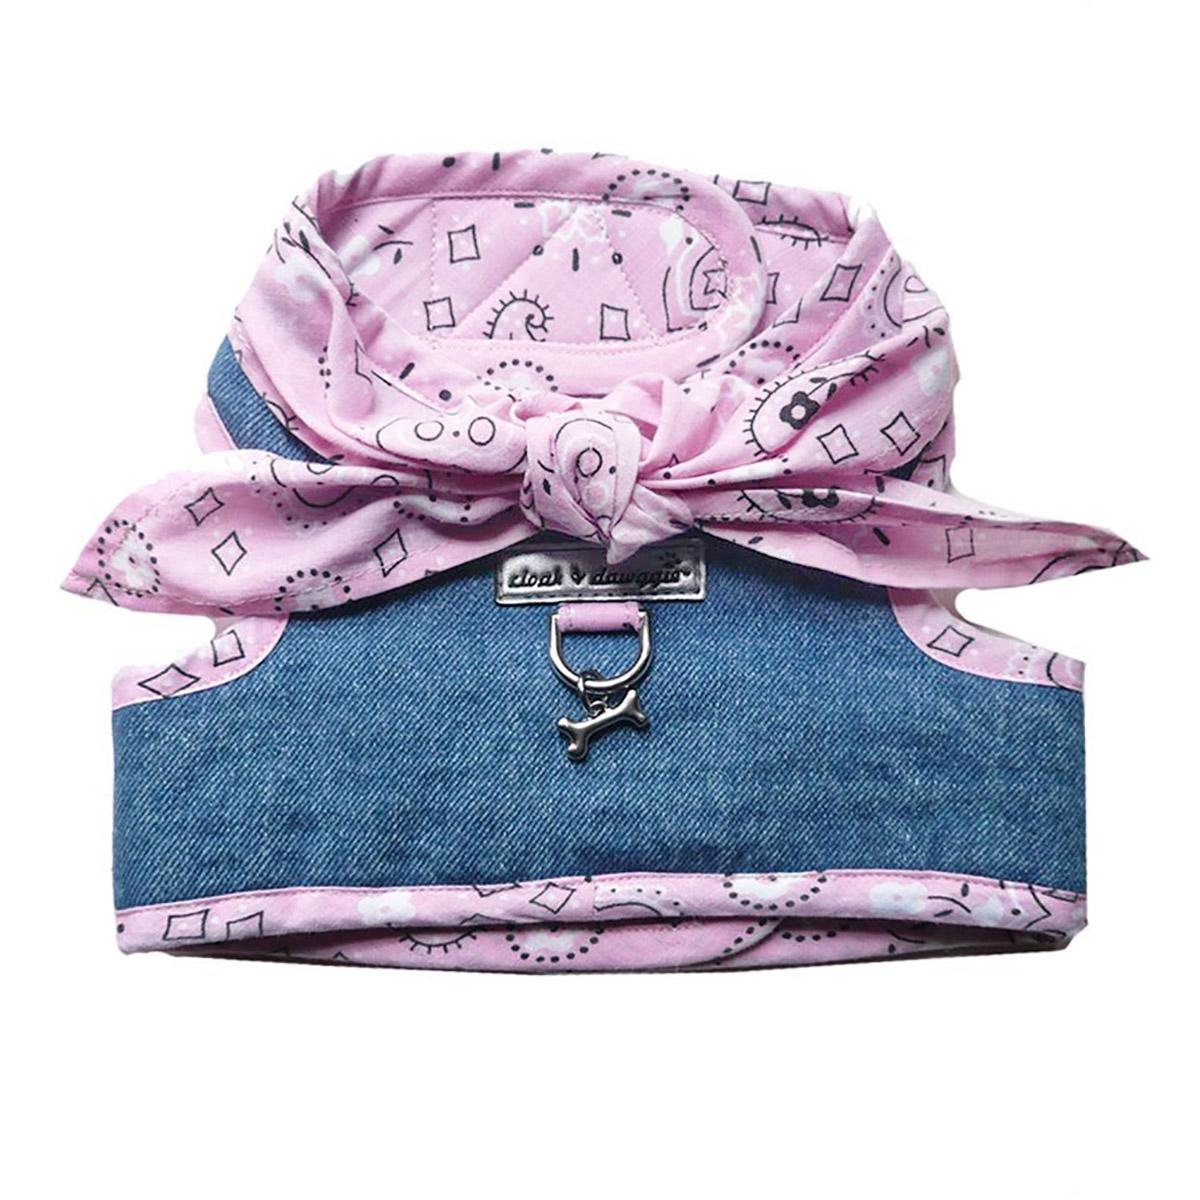 Denim Scarf Tie Dog Harness Vest - Pink Bandana